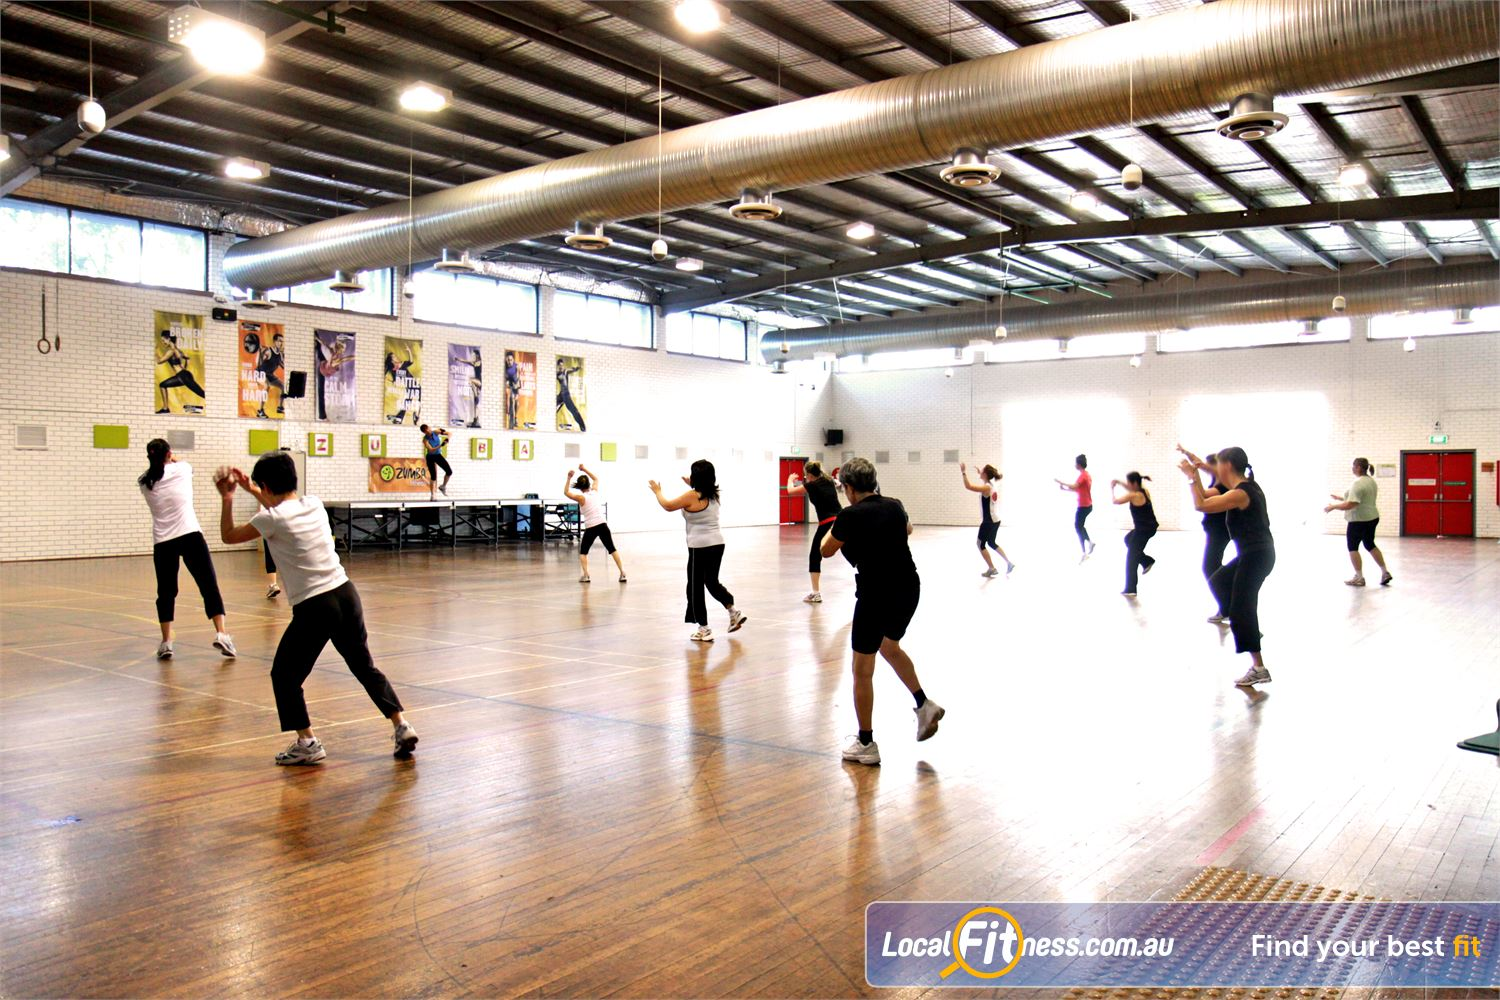 Ascot Vale Leisure Centre Ascot Vale The Ascot Vale group fitness menu includes over 120 classes per week.